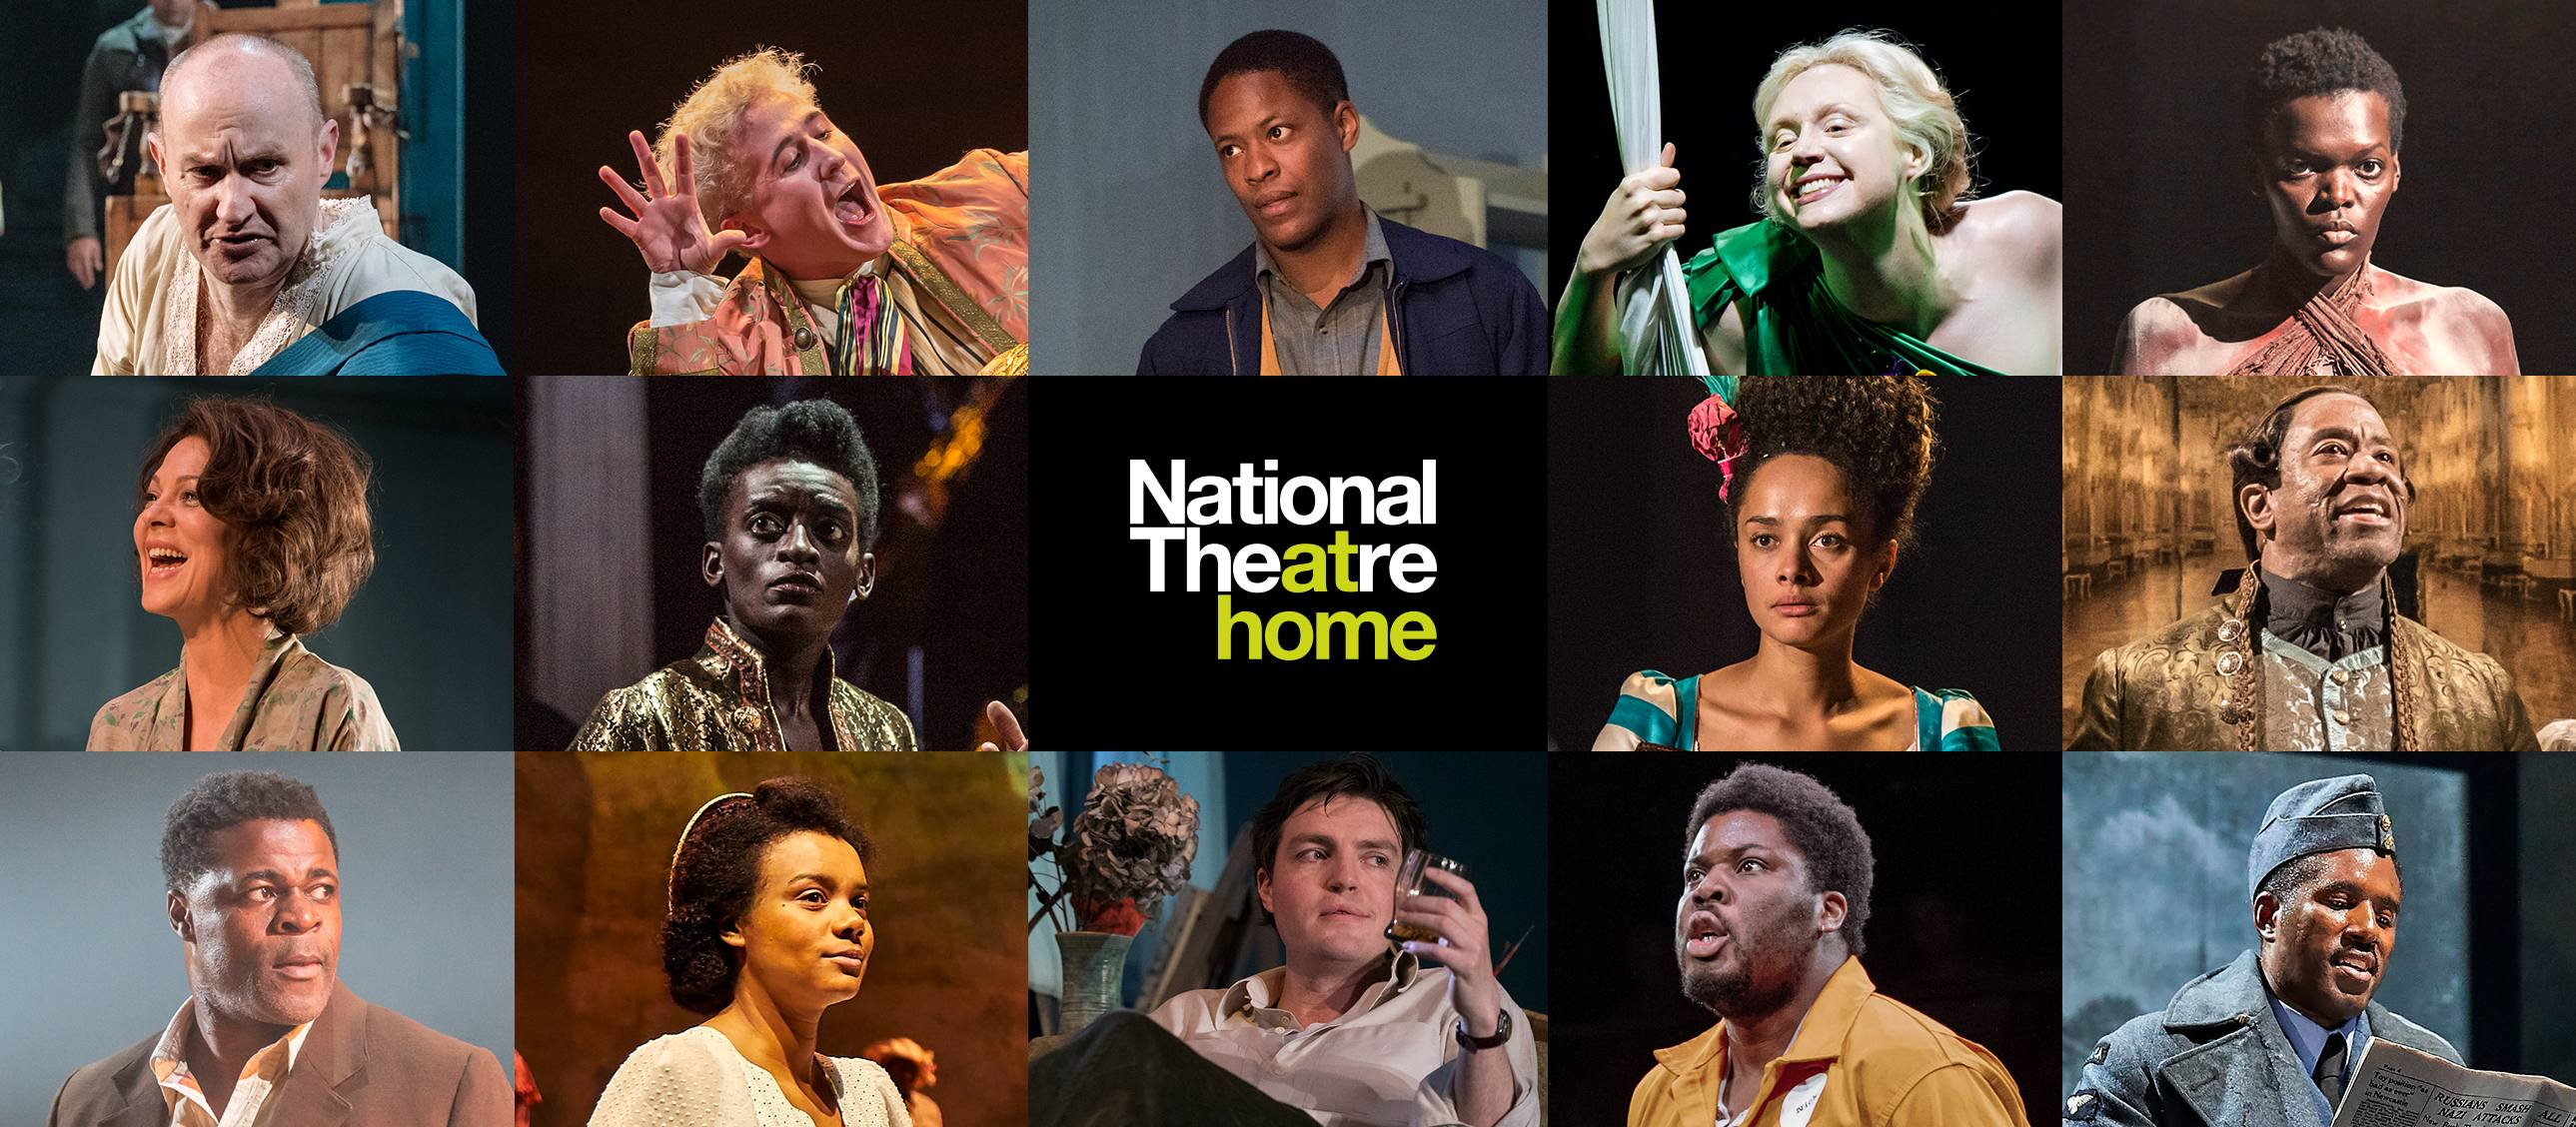 National Thetare at Home - production images of The Madness of George III, Small Island, A Midsummer Night's Dream, Les Blancs, The Deep Blue Sea and Amadeus